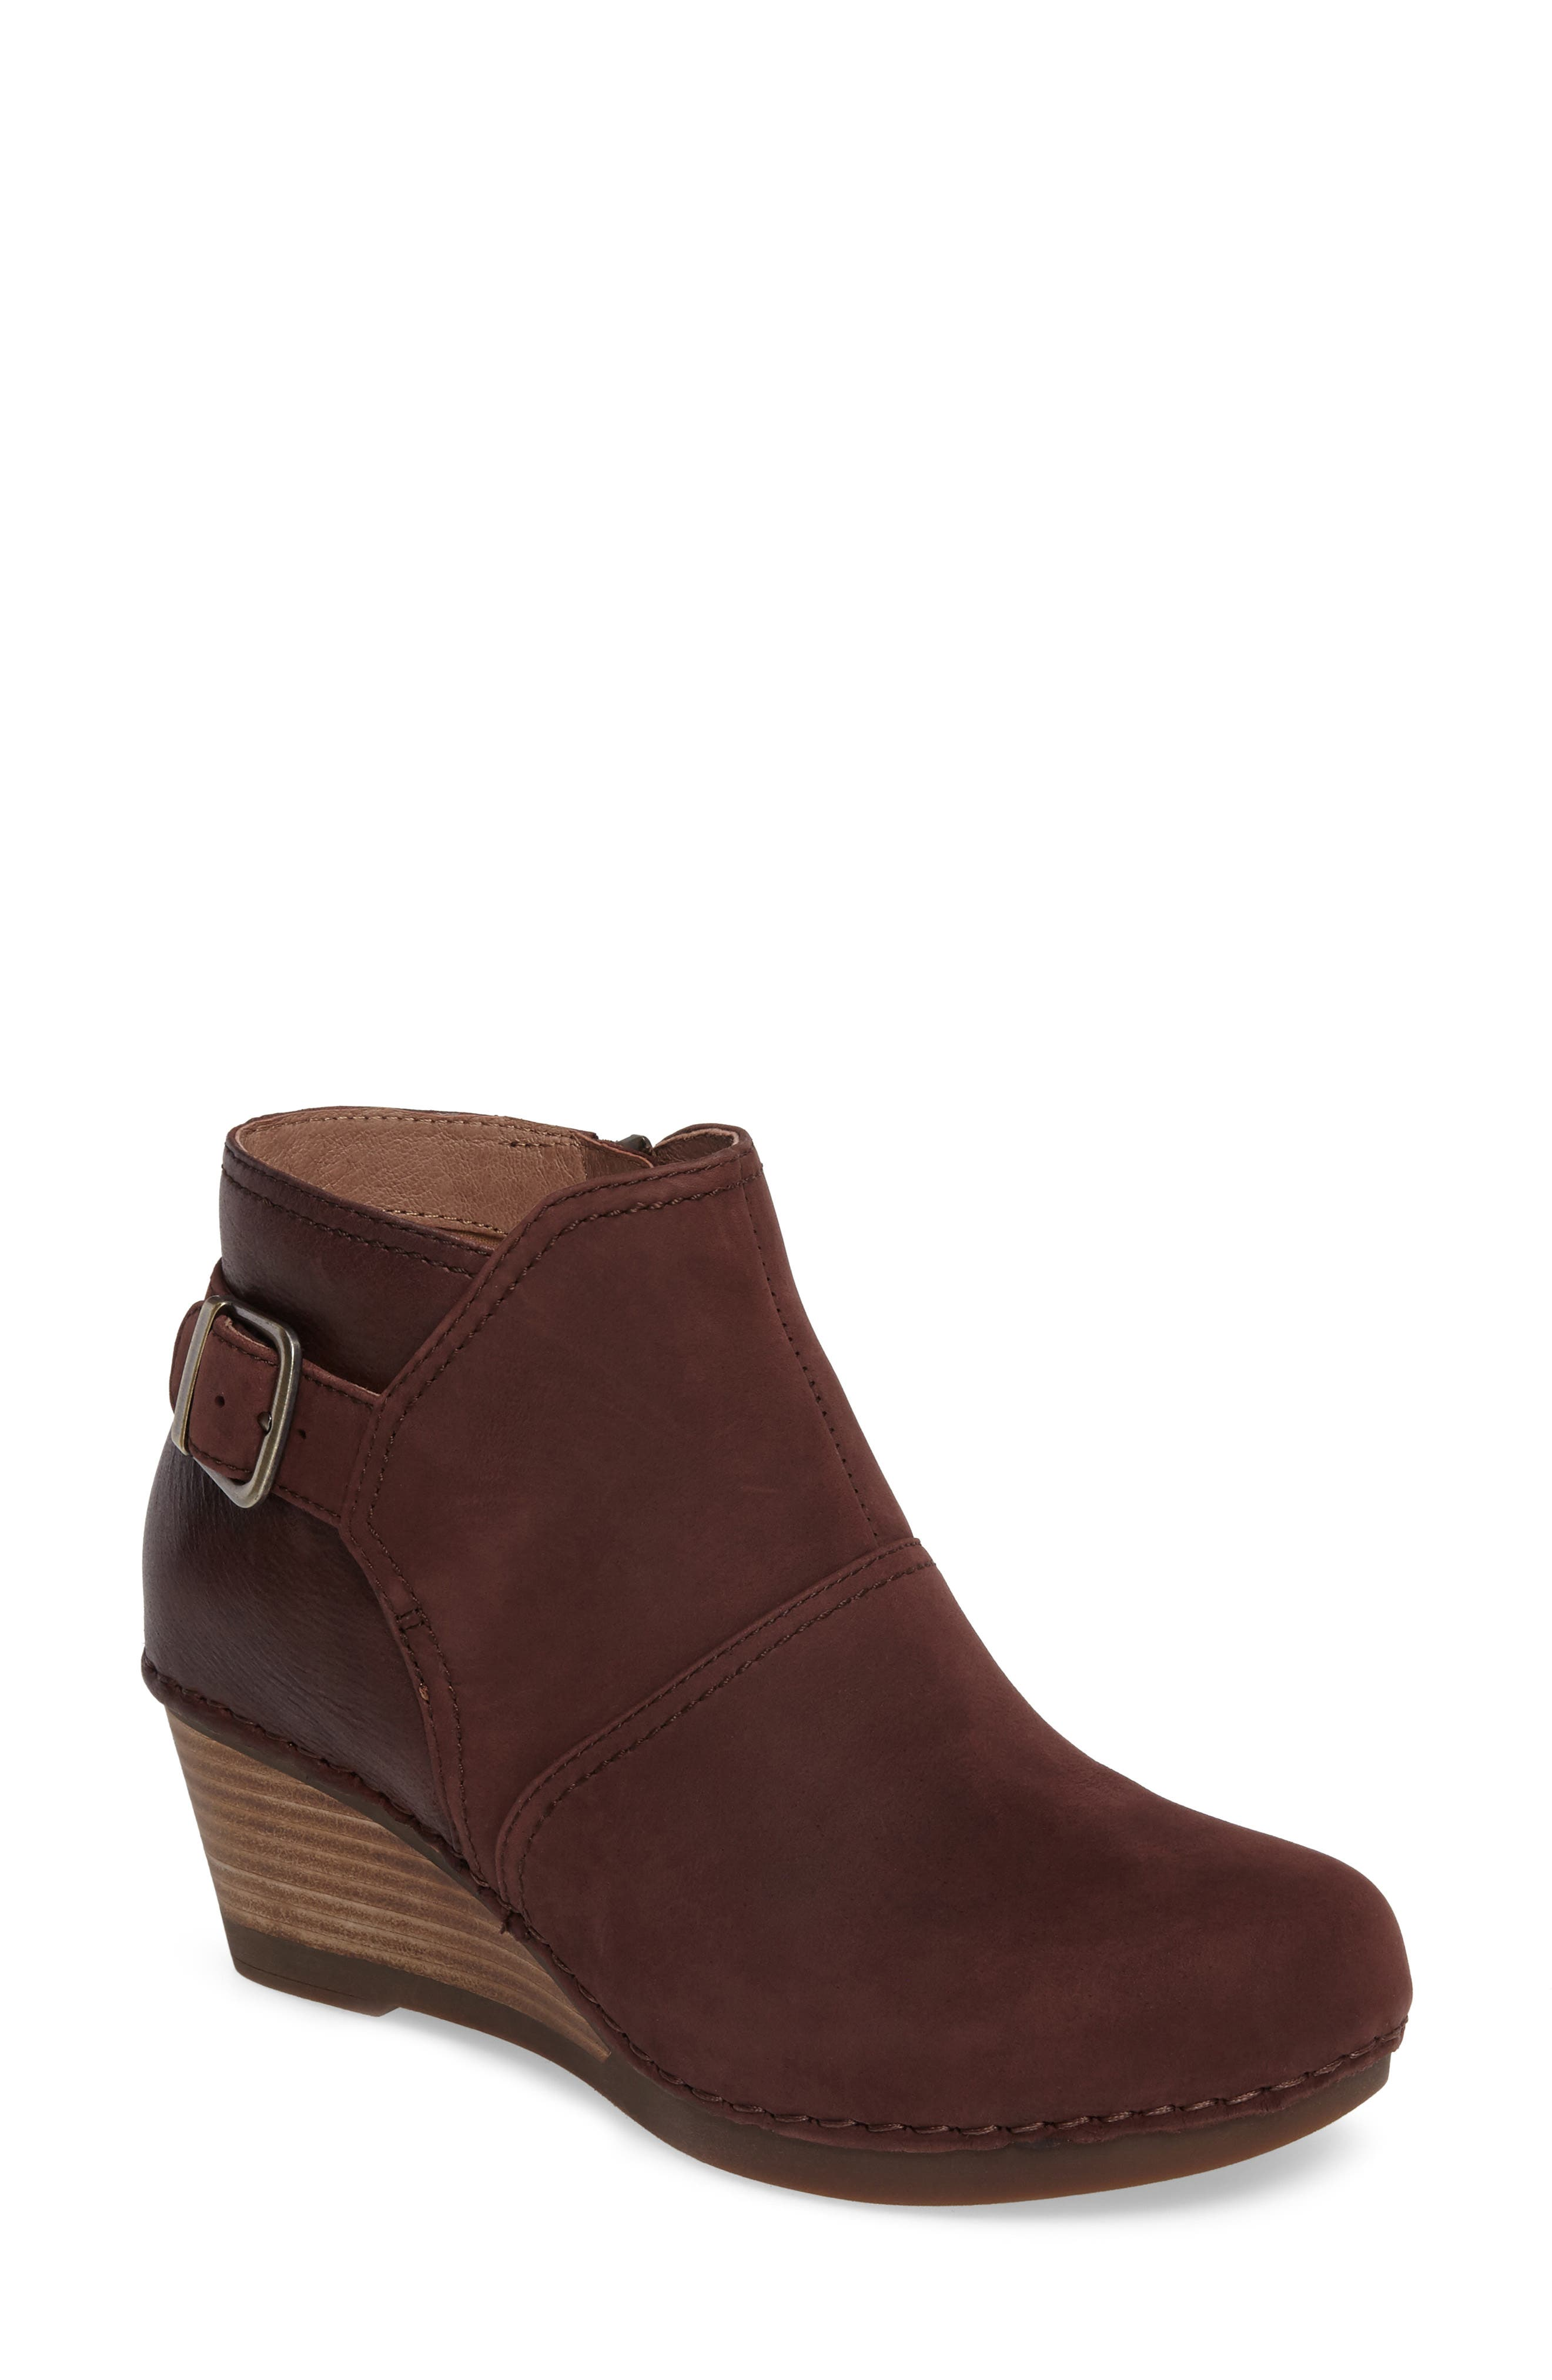 Alternate Image 1 Selected - Dansko 'Shirley' Wedge Bootie (Women)